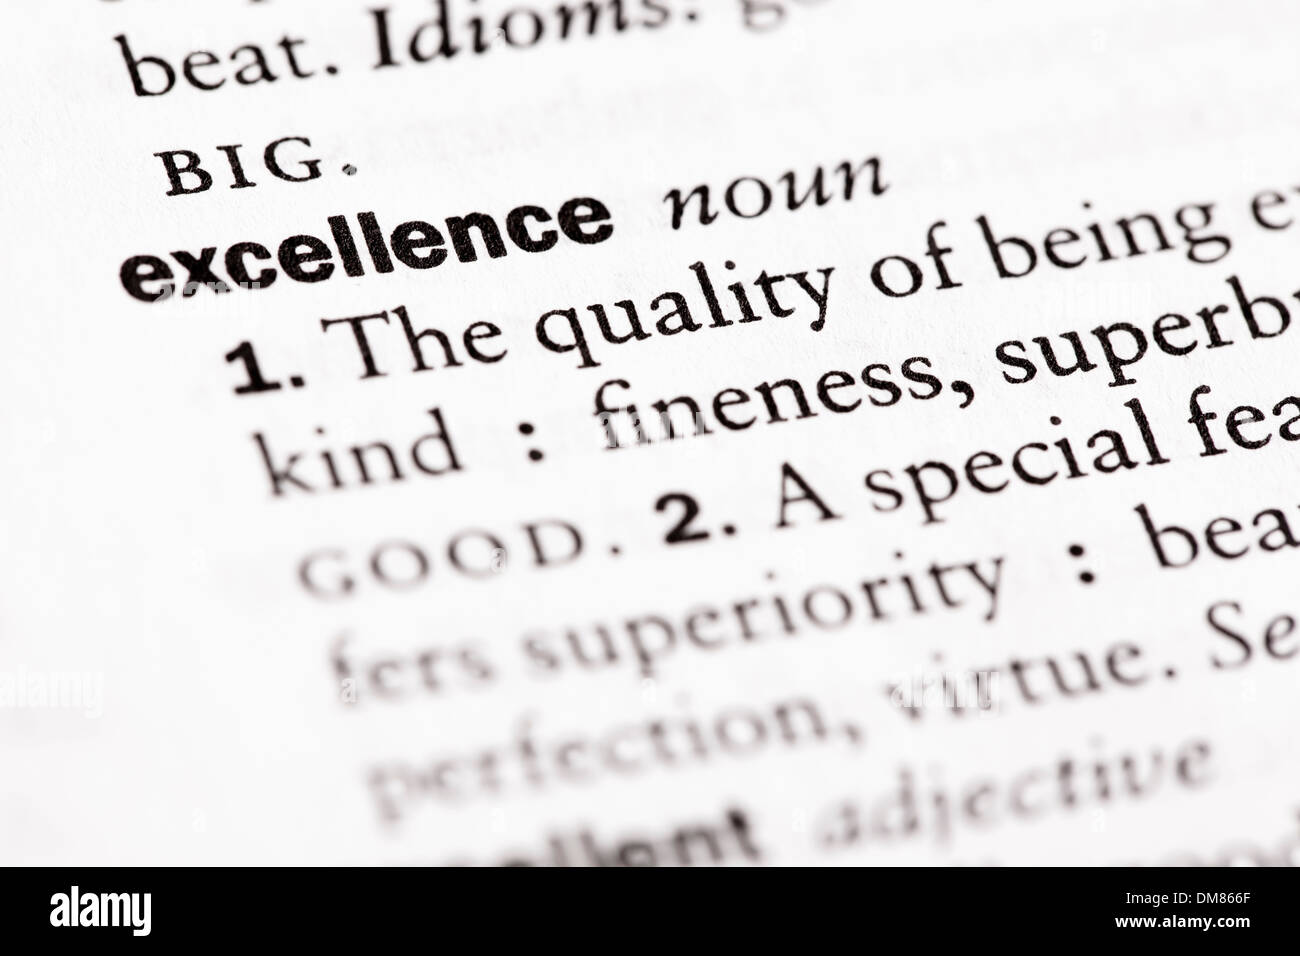 Dictionary definition of 'Excellence' - Stock Image